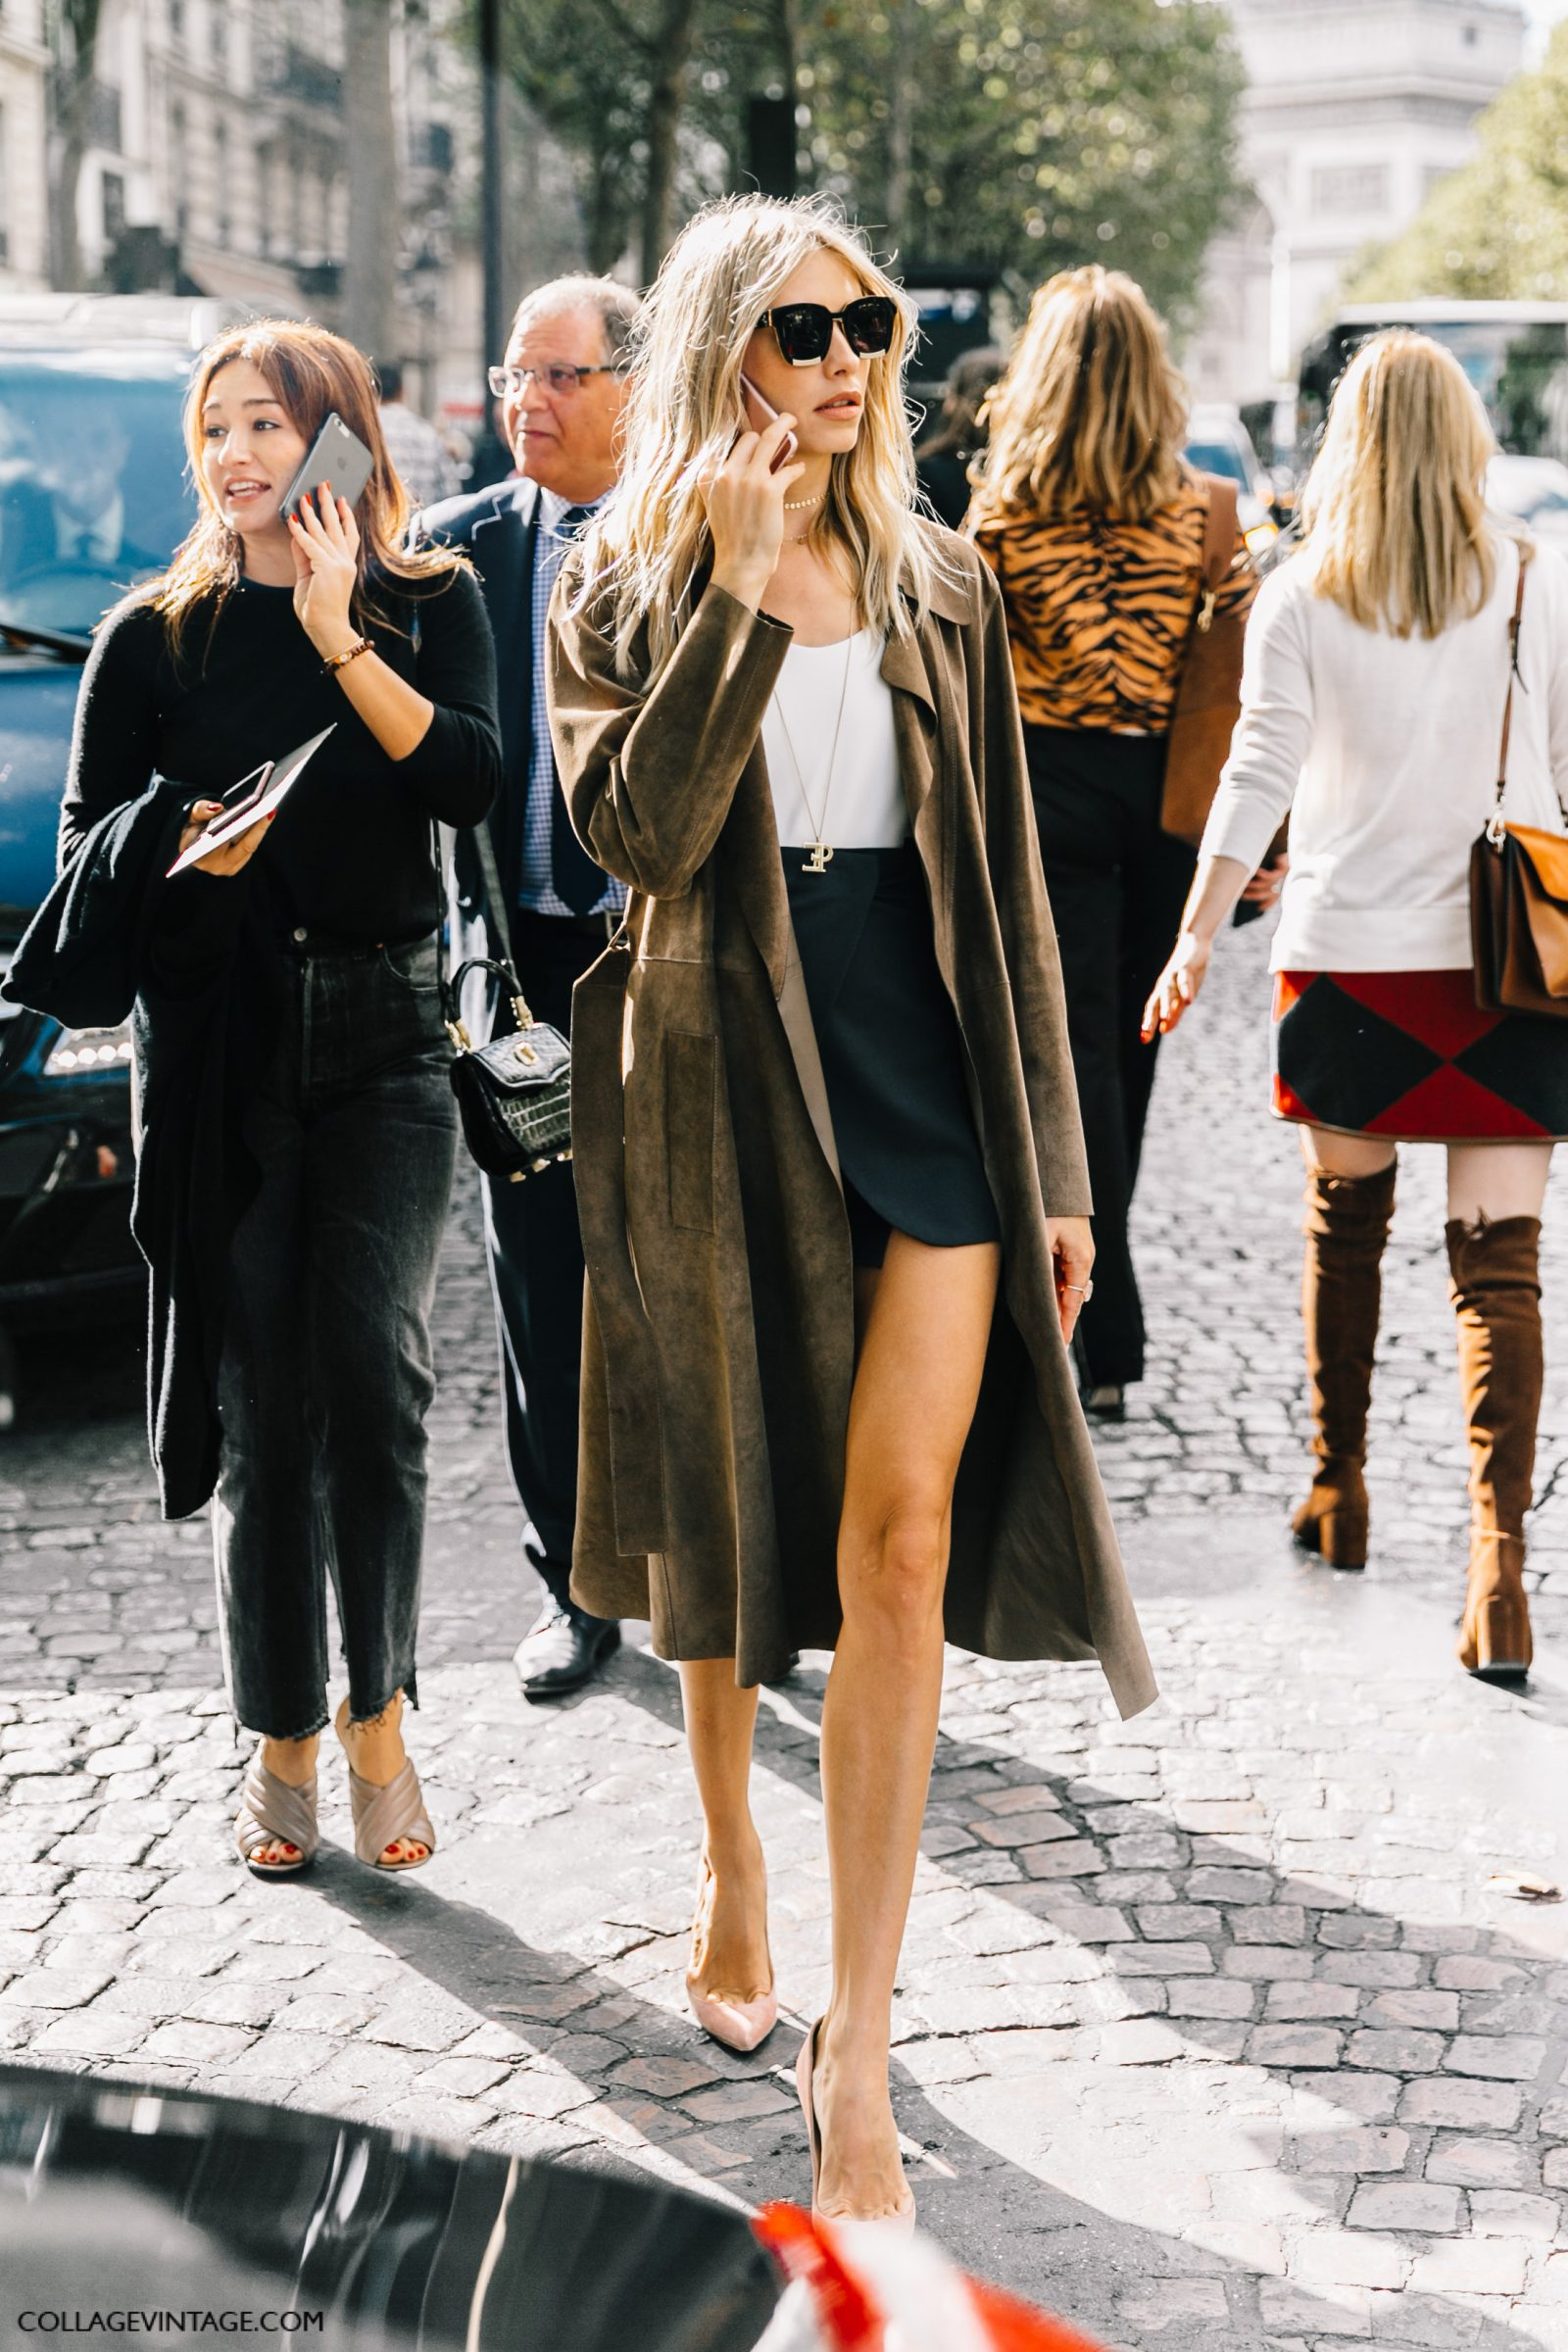 pfw-paris_fashion_week_ss17-street_style-outfits-collage_vintage-chloe-carven-balmain-barbara_bui-184